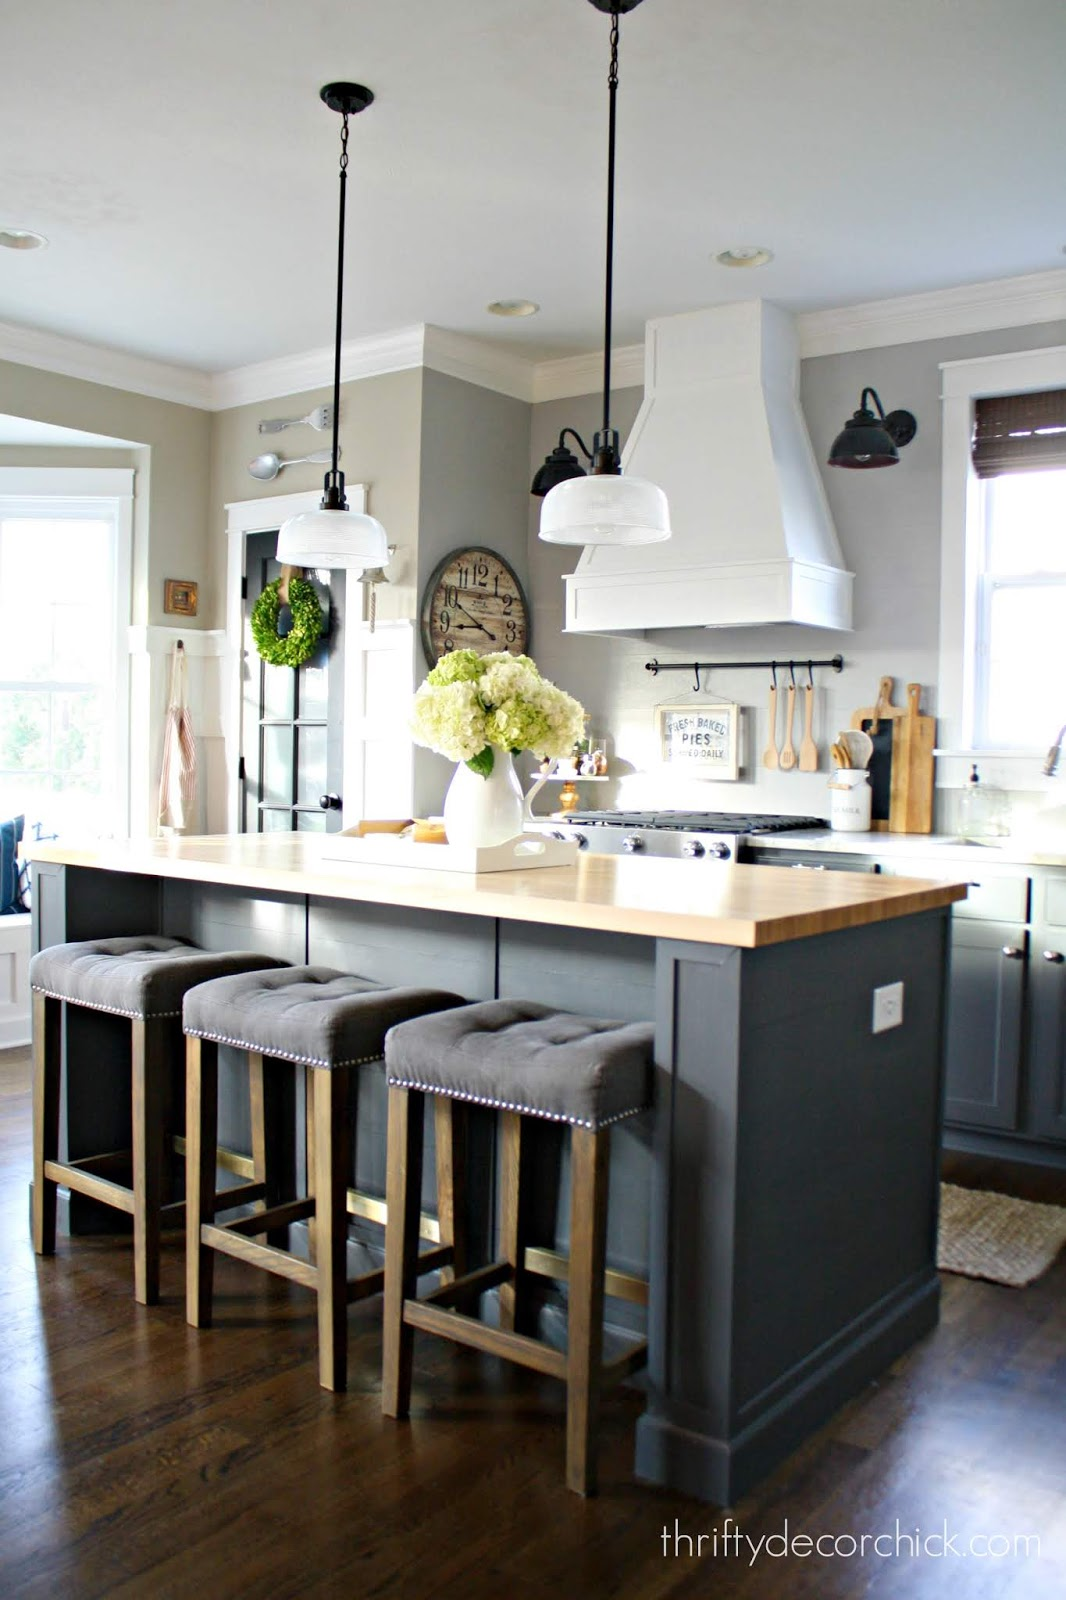 How to extend an existing kitchen island